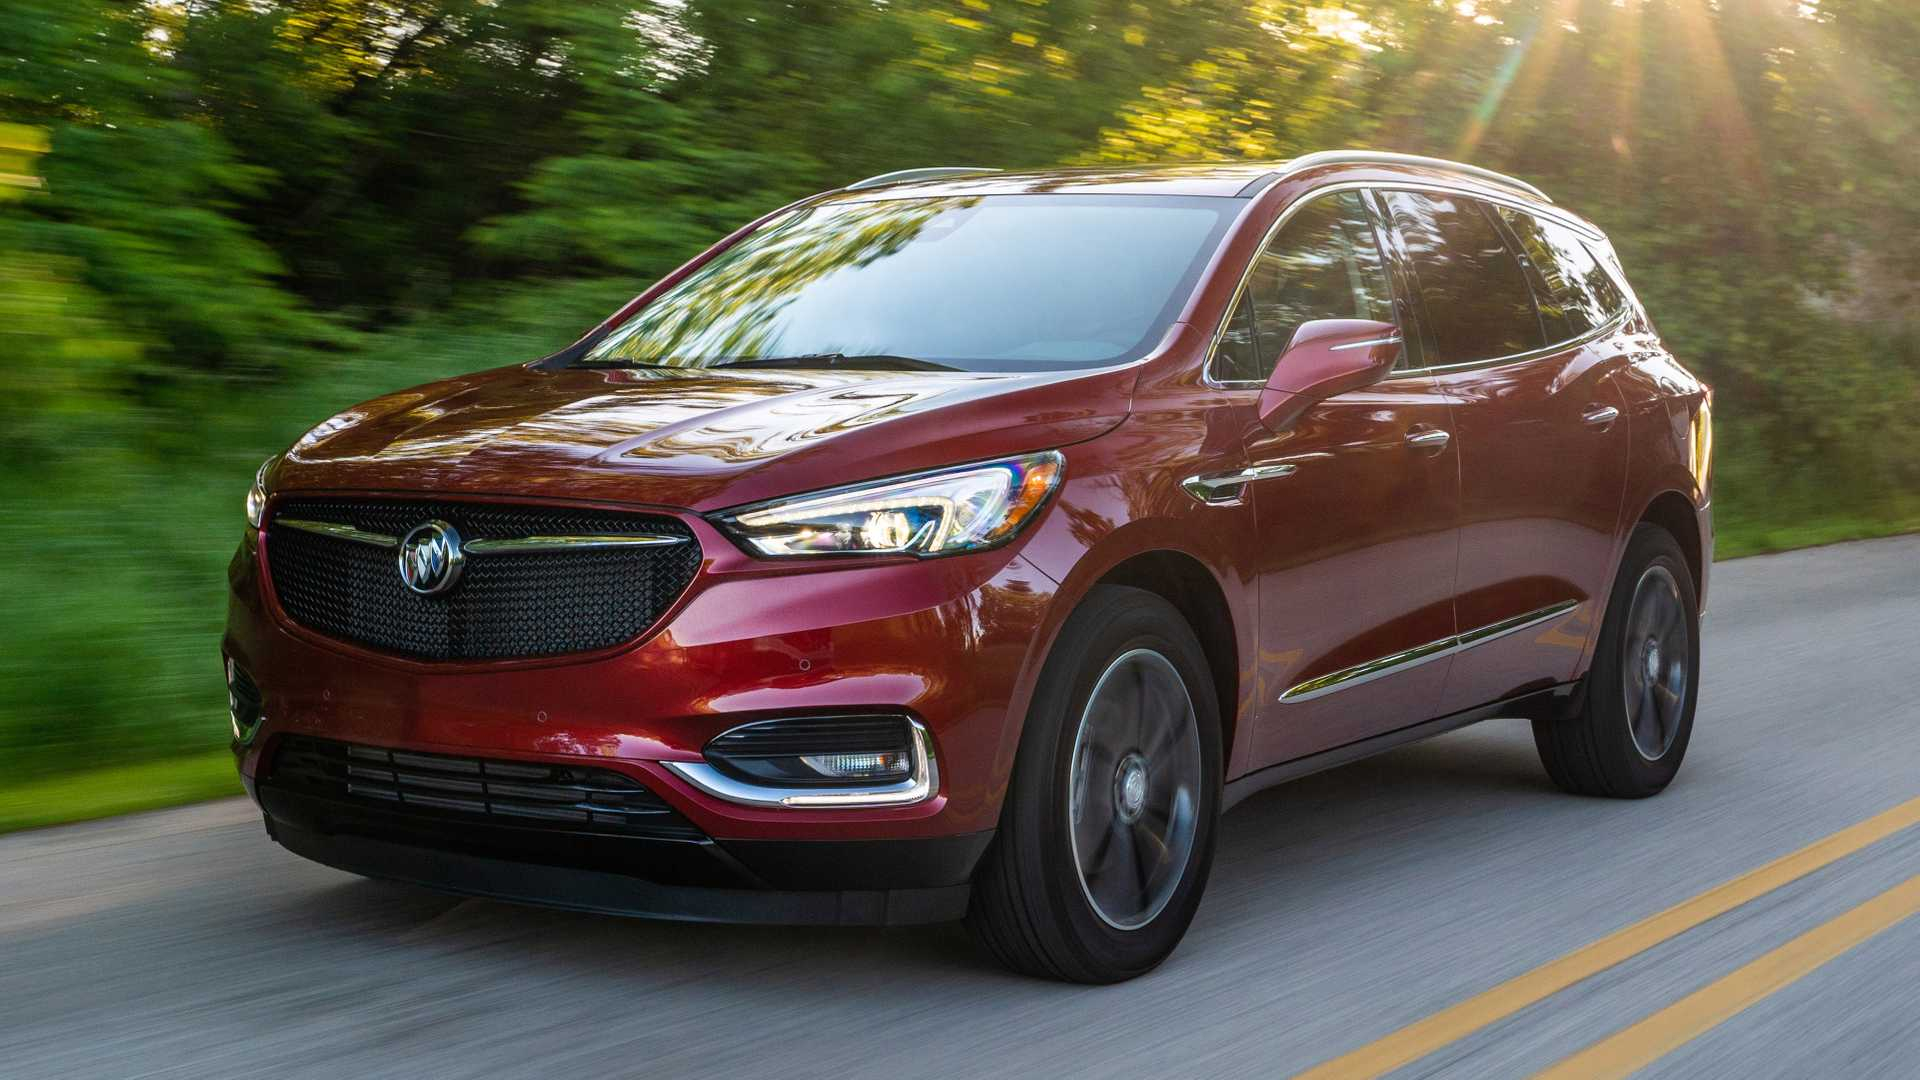 2020 Buick Enclave Debuts With Sport Touring Package New 2021 Buick Enclave Avenir Owners Manual, Pictures, Colors